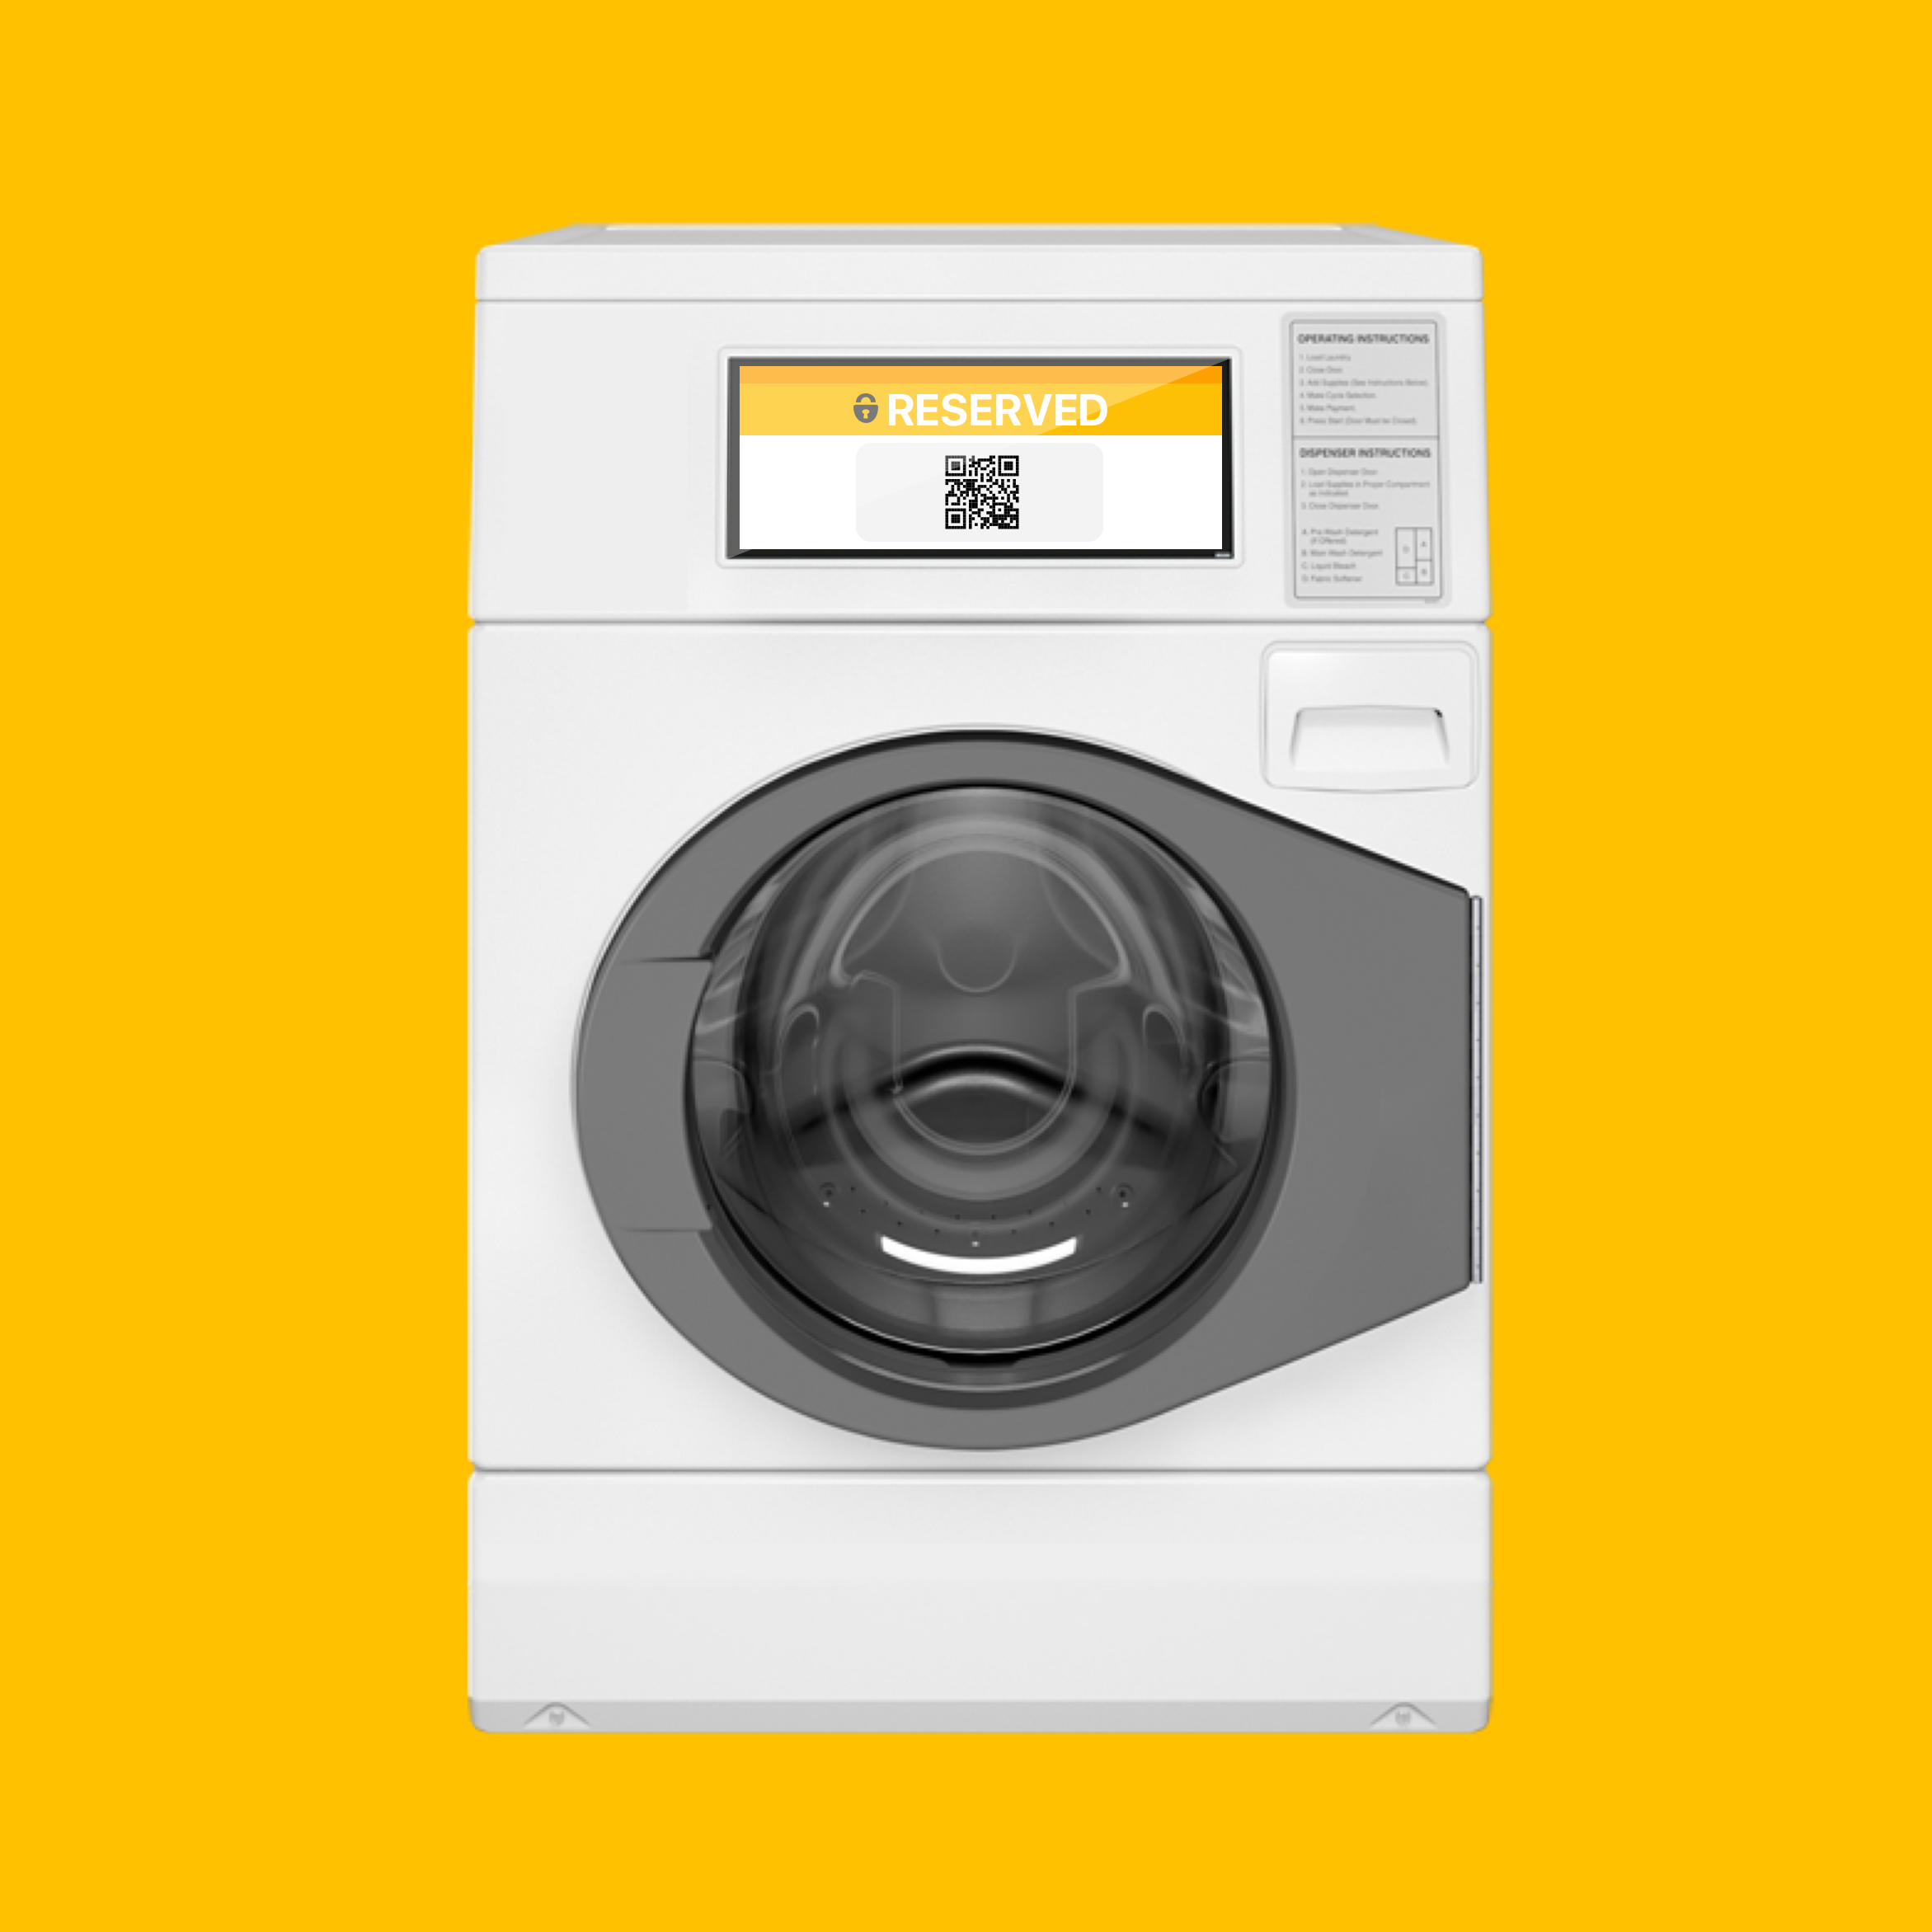 Swift Spin - Service Design & User ResearchMobile, Kiosk (2017)Swift Spin is an stress-free laundromat experience with high-tech machines, considerate laundry notifications, and an attached cafe.